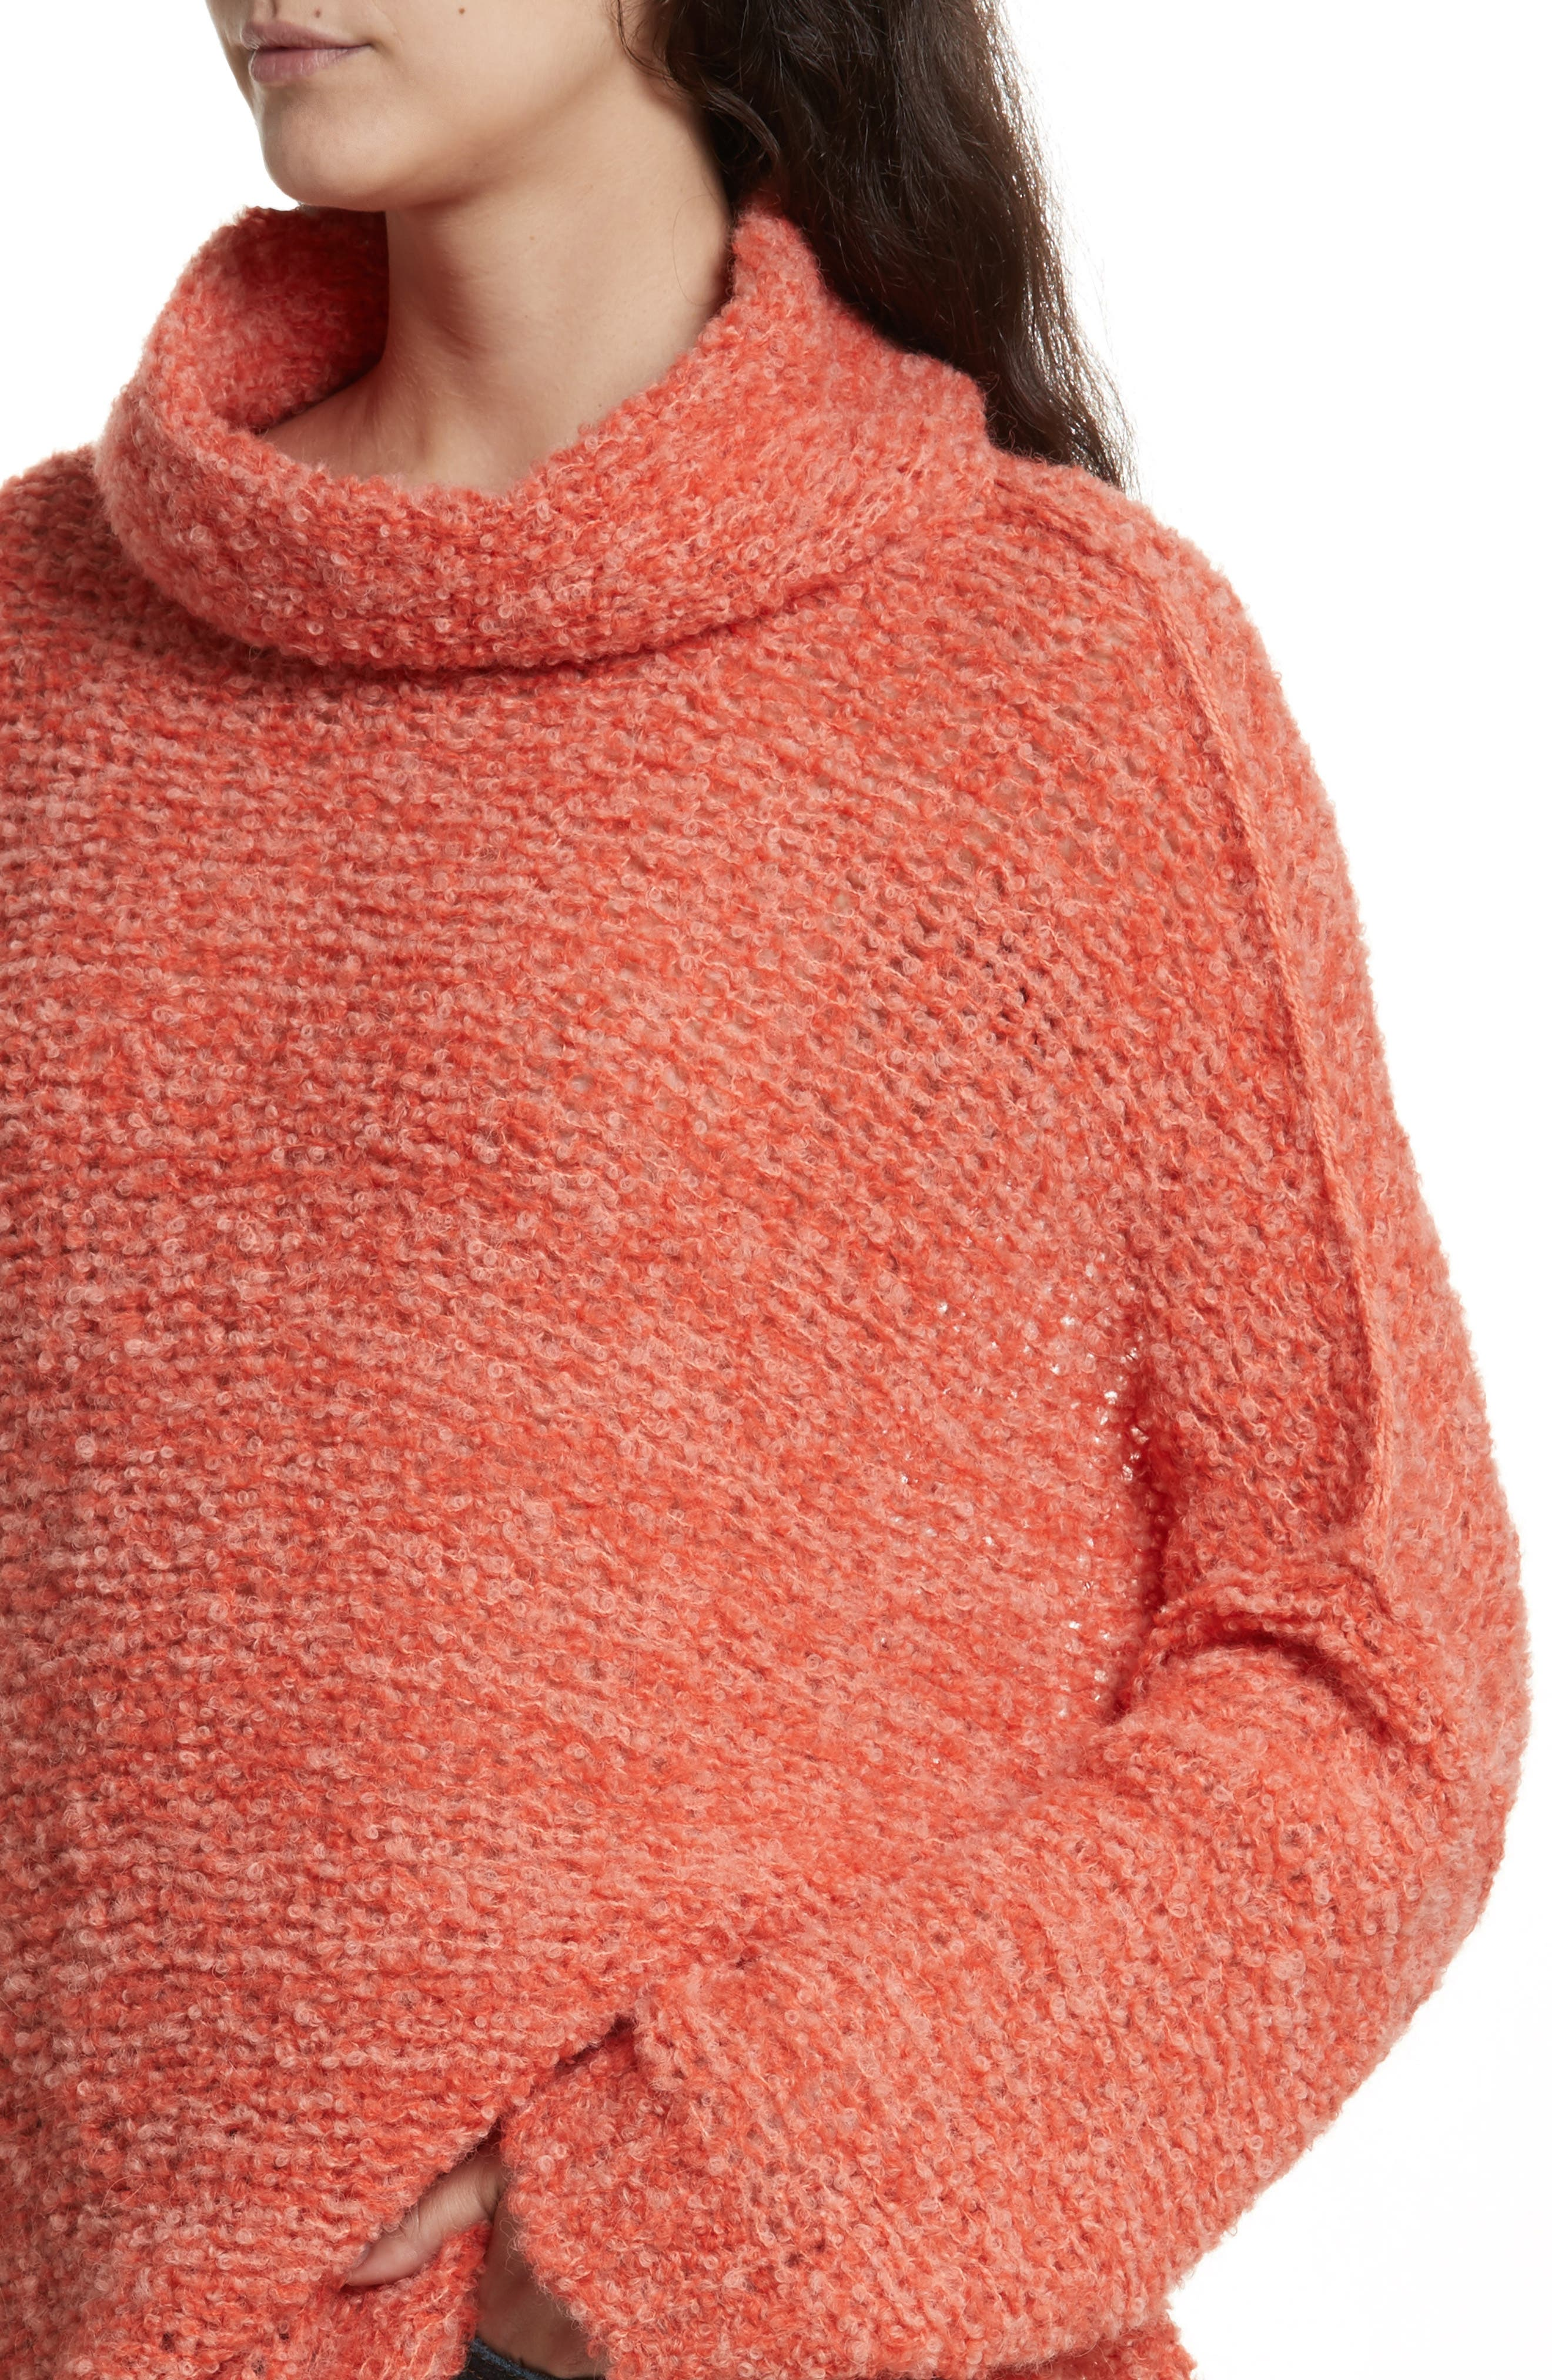 'She's All That' Knit Turtleneck Sweater,                             Alternate thumbnail 4, color,                             800